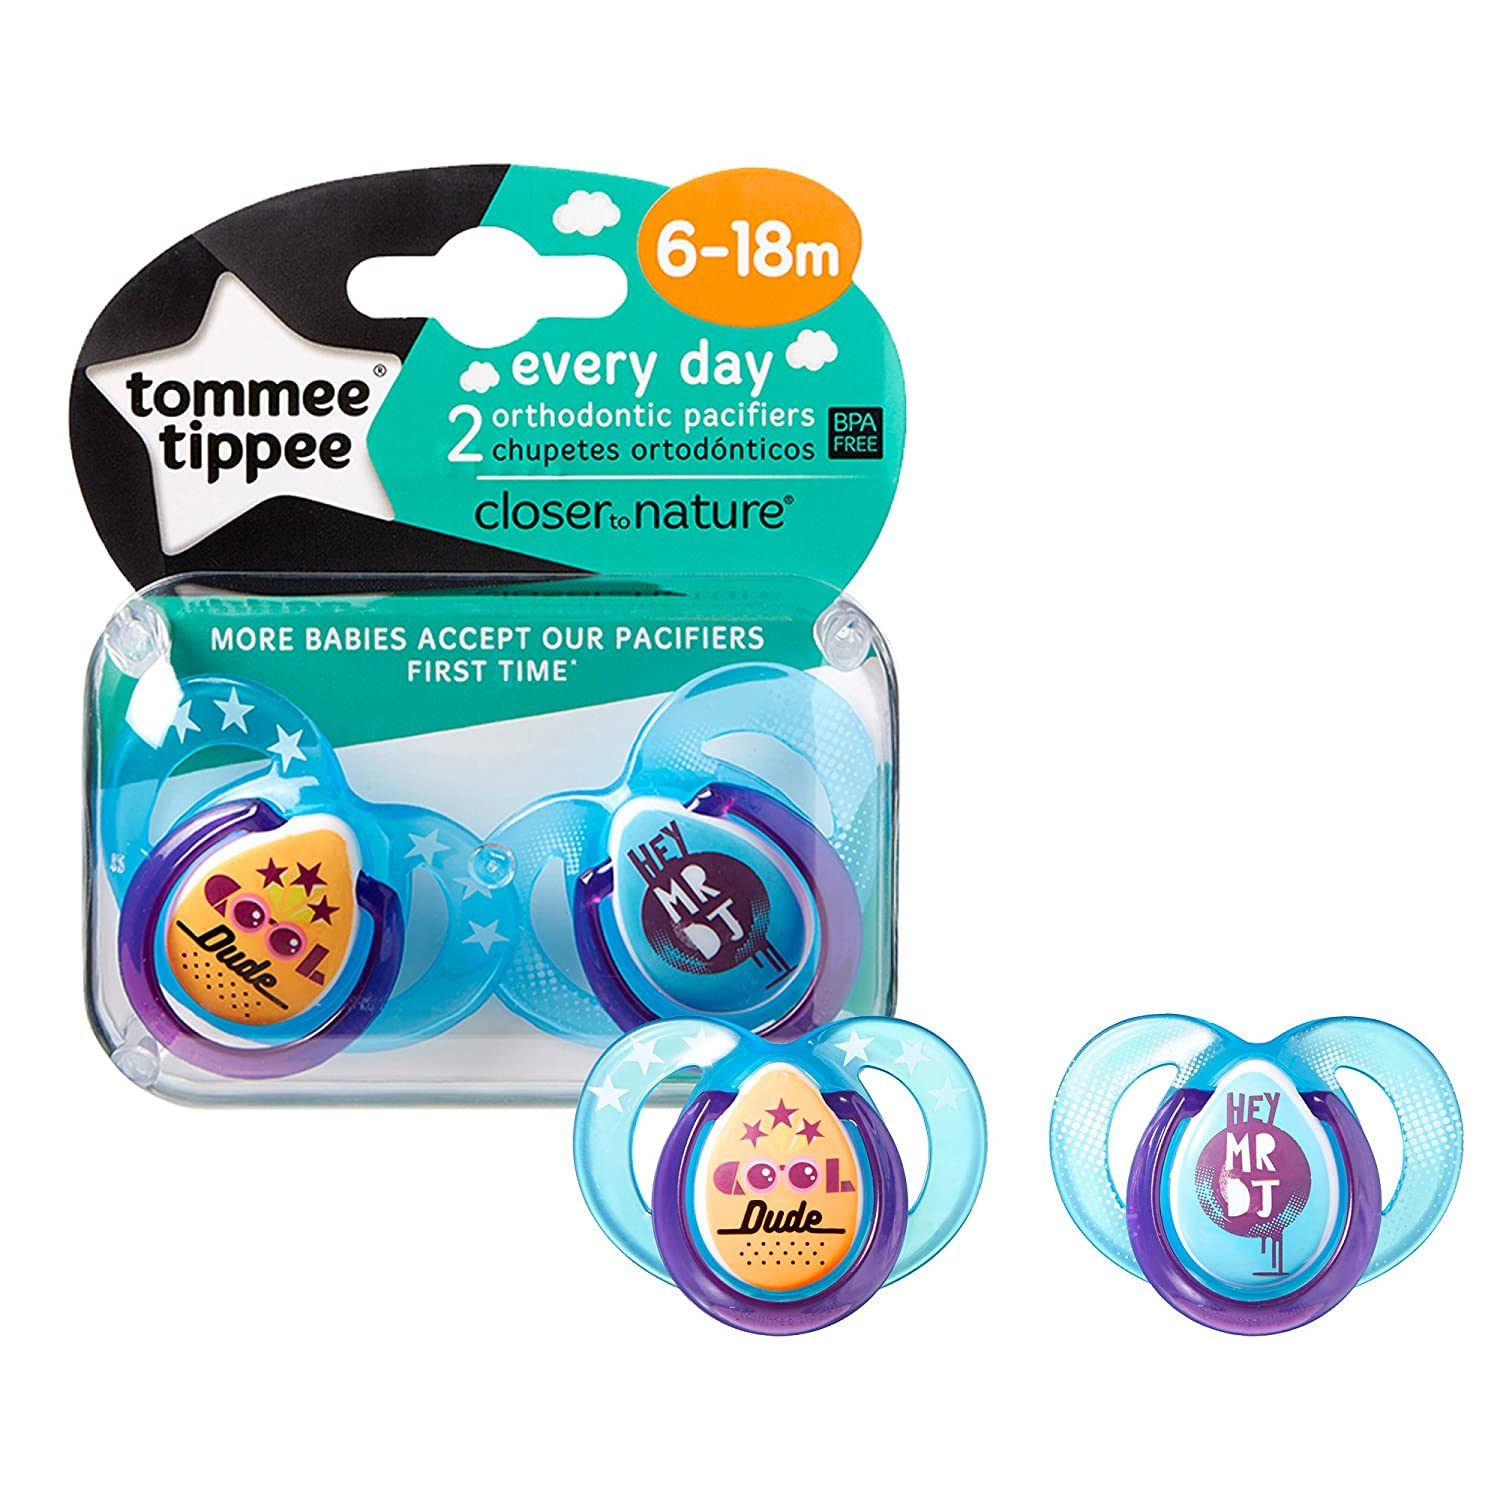 Tommee Tippee Closer to Nature Everyday Pacifier, Blue, 6-18 Months, 2 Count -Colors Will Vary